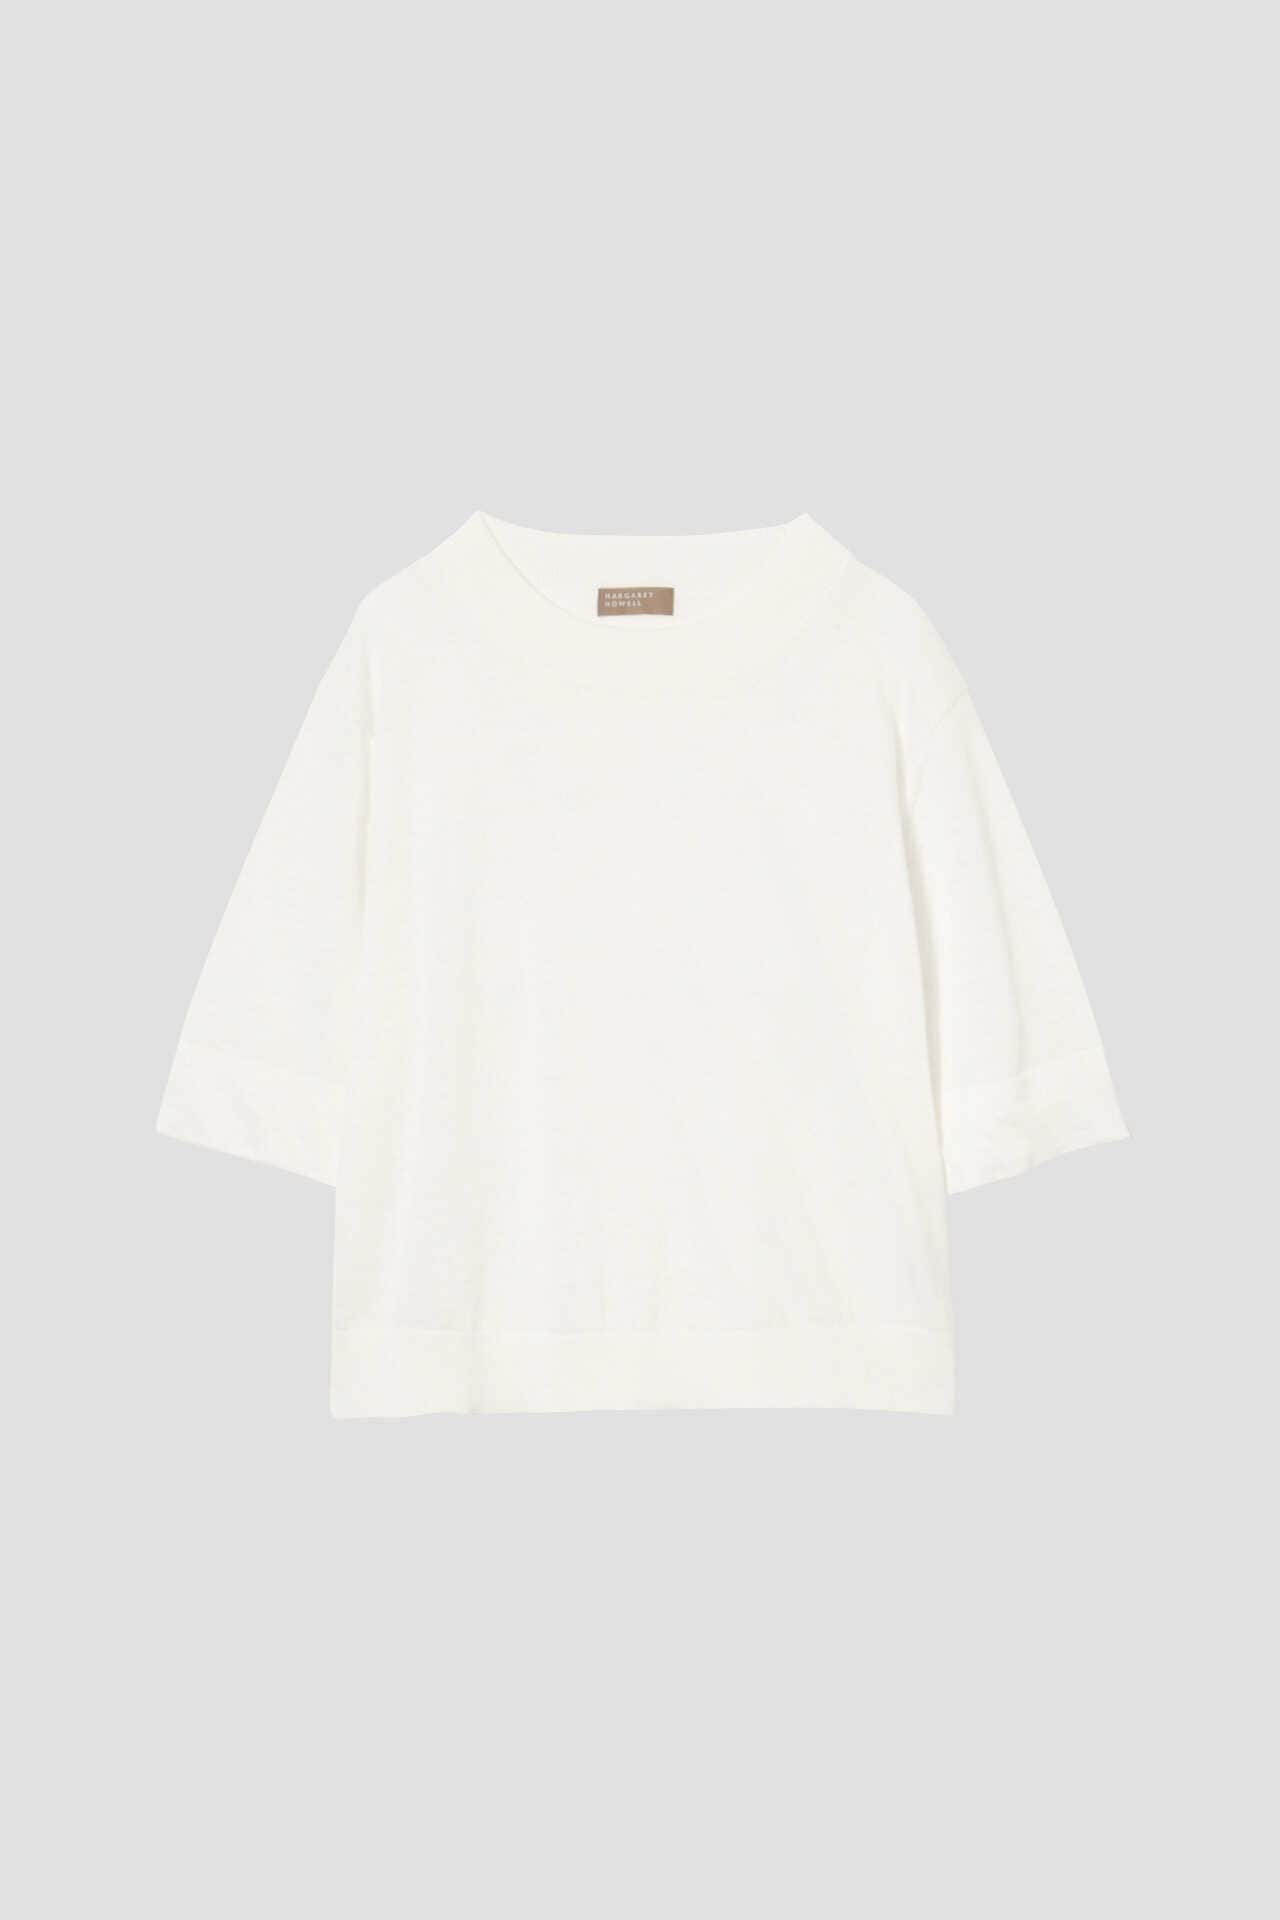 RAMIE COTTON DEEP RIB T SHIRT4